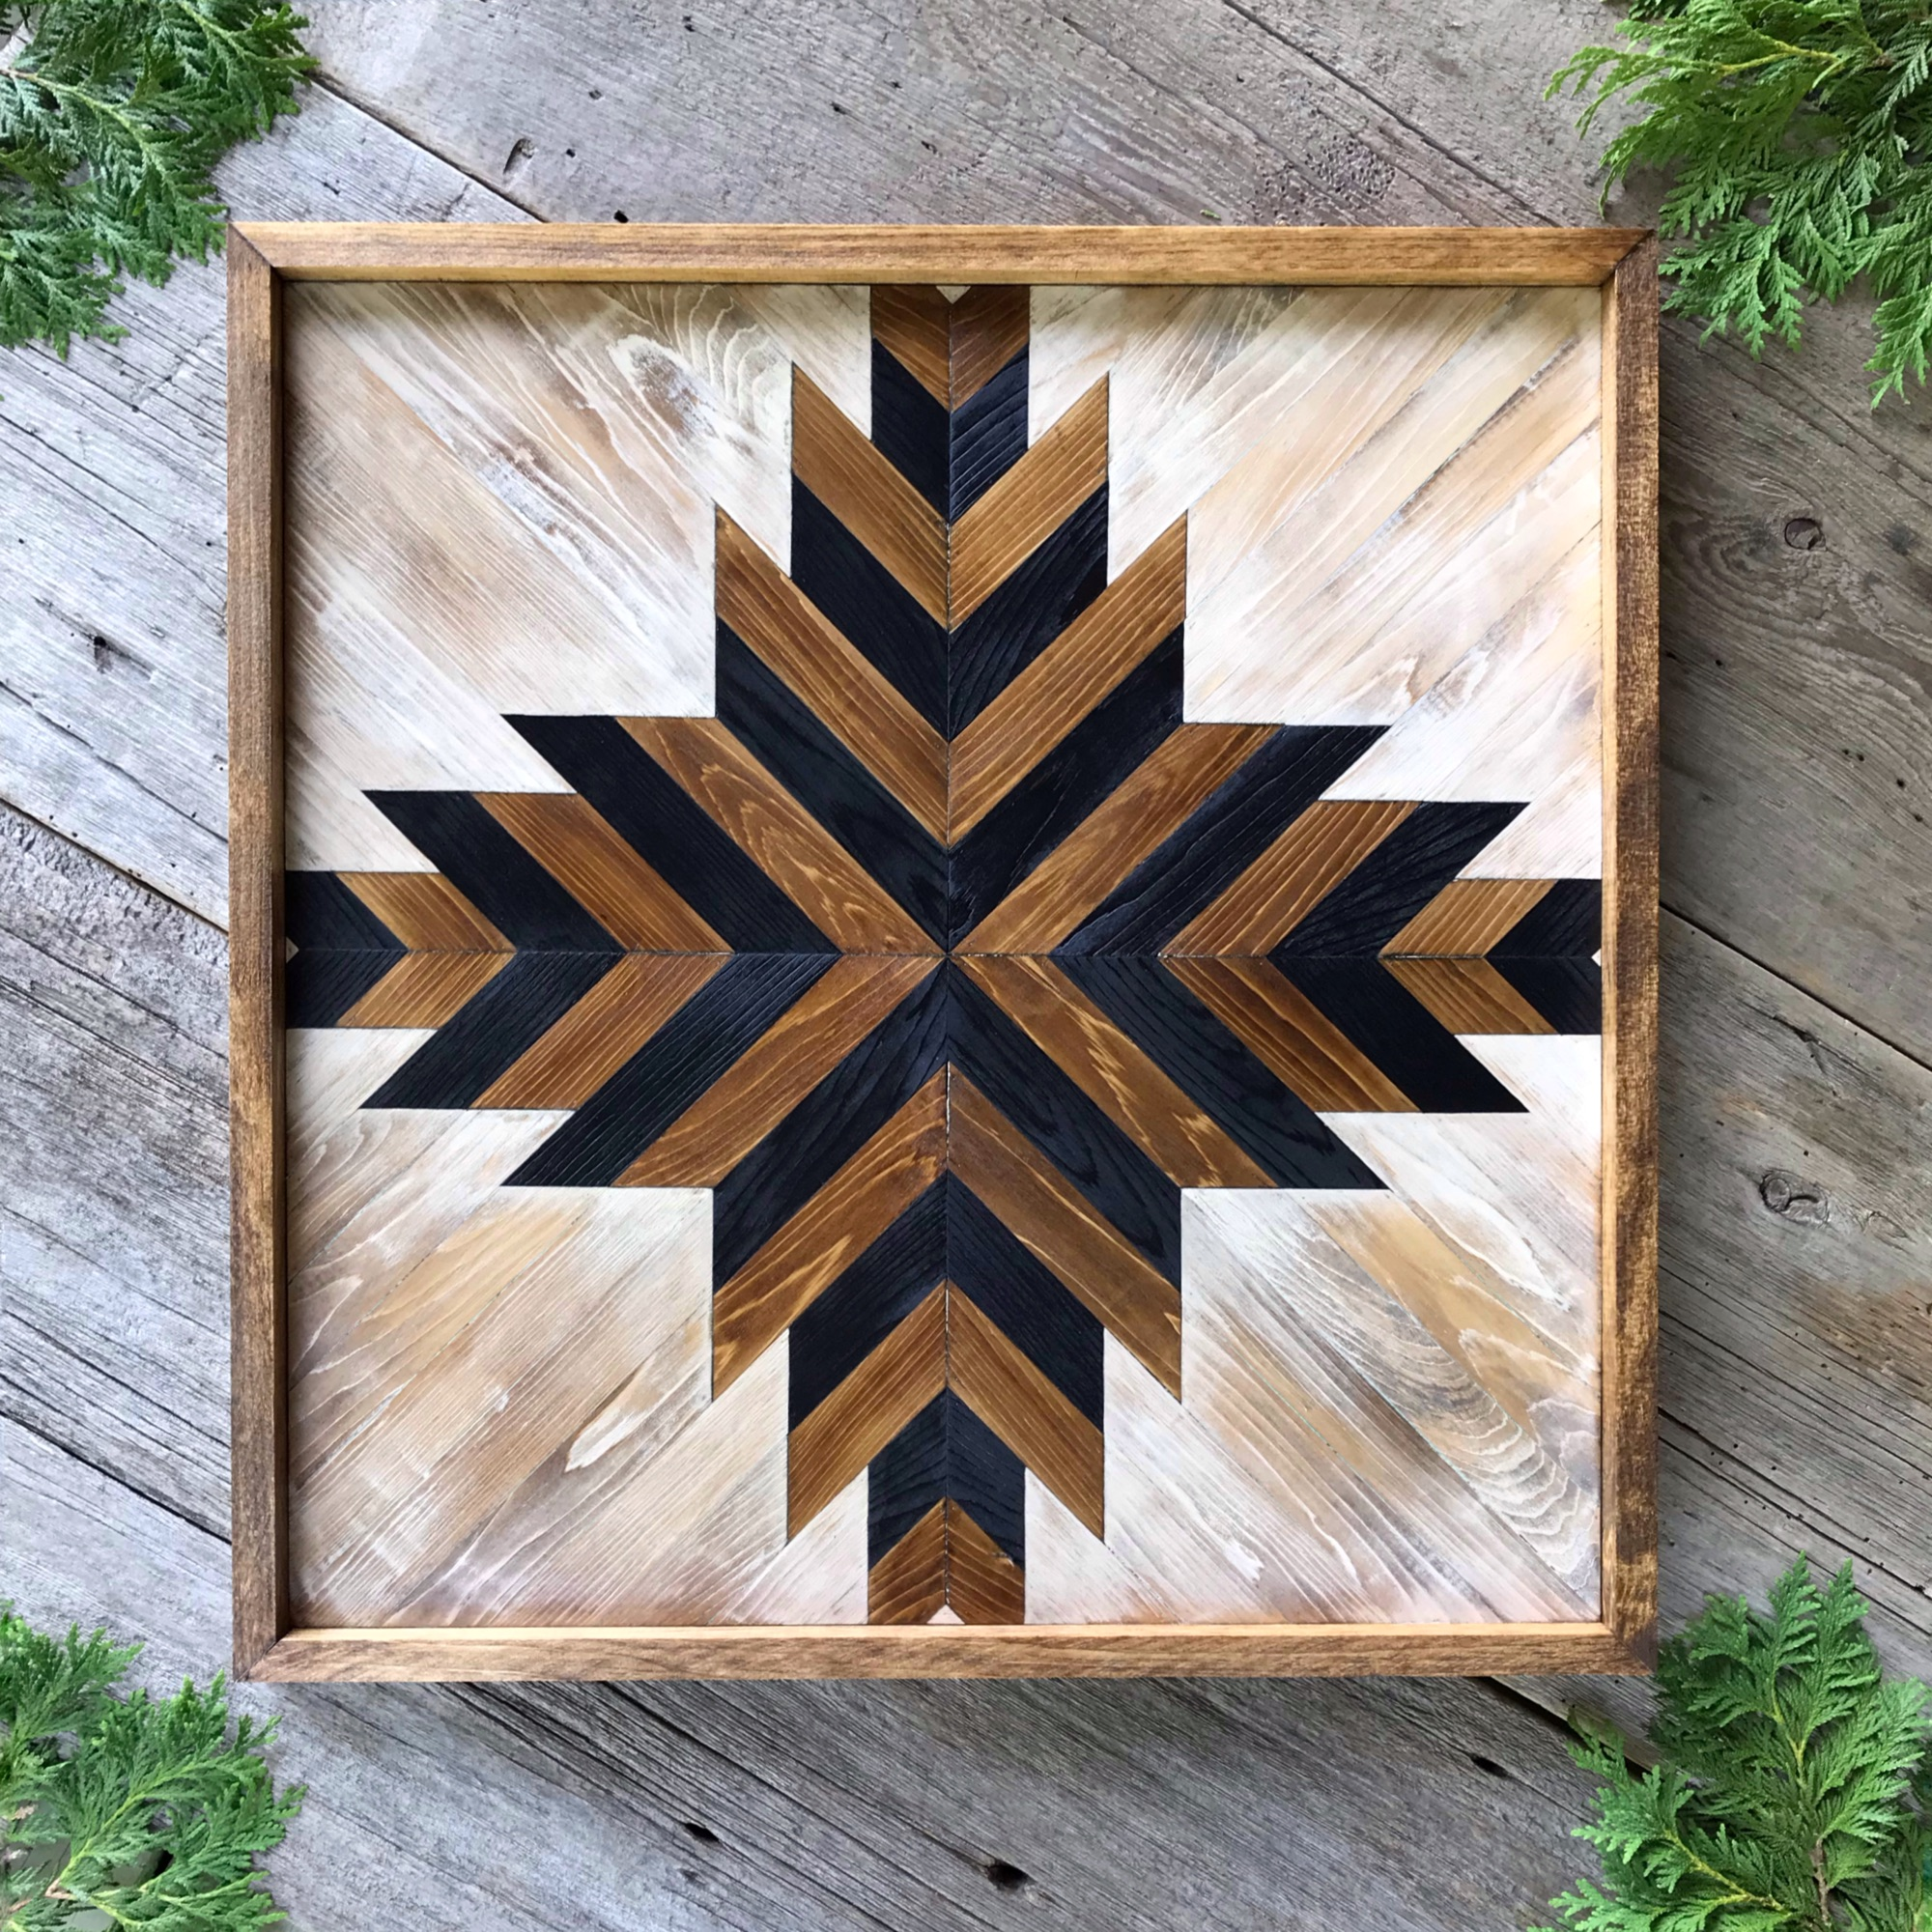 Wood Wall Art, Geometrical Patterns, Tribal Aztec, Wooden Wall Decor